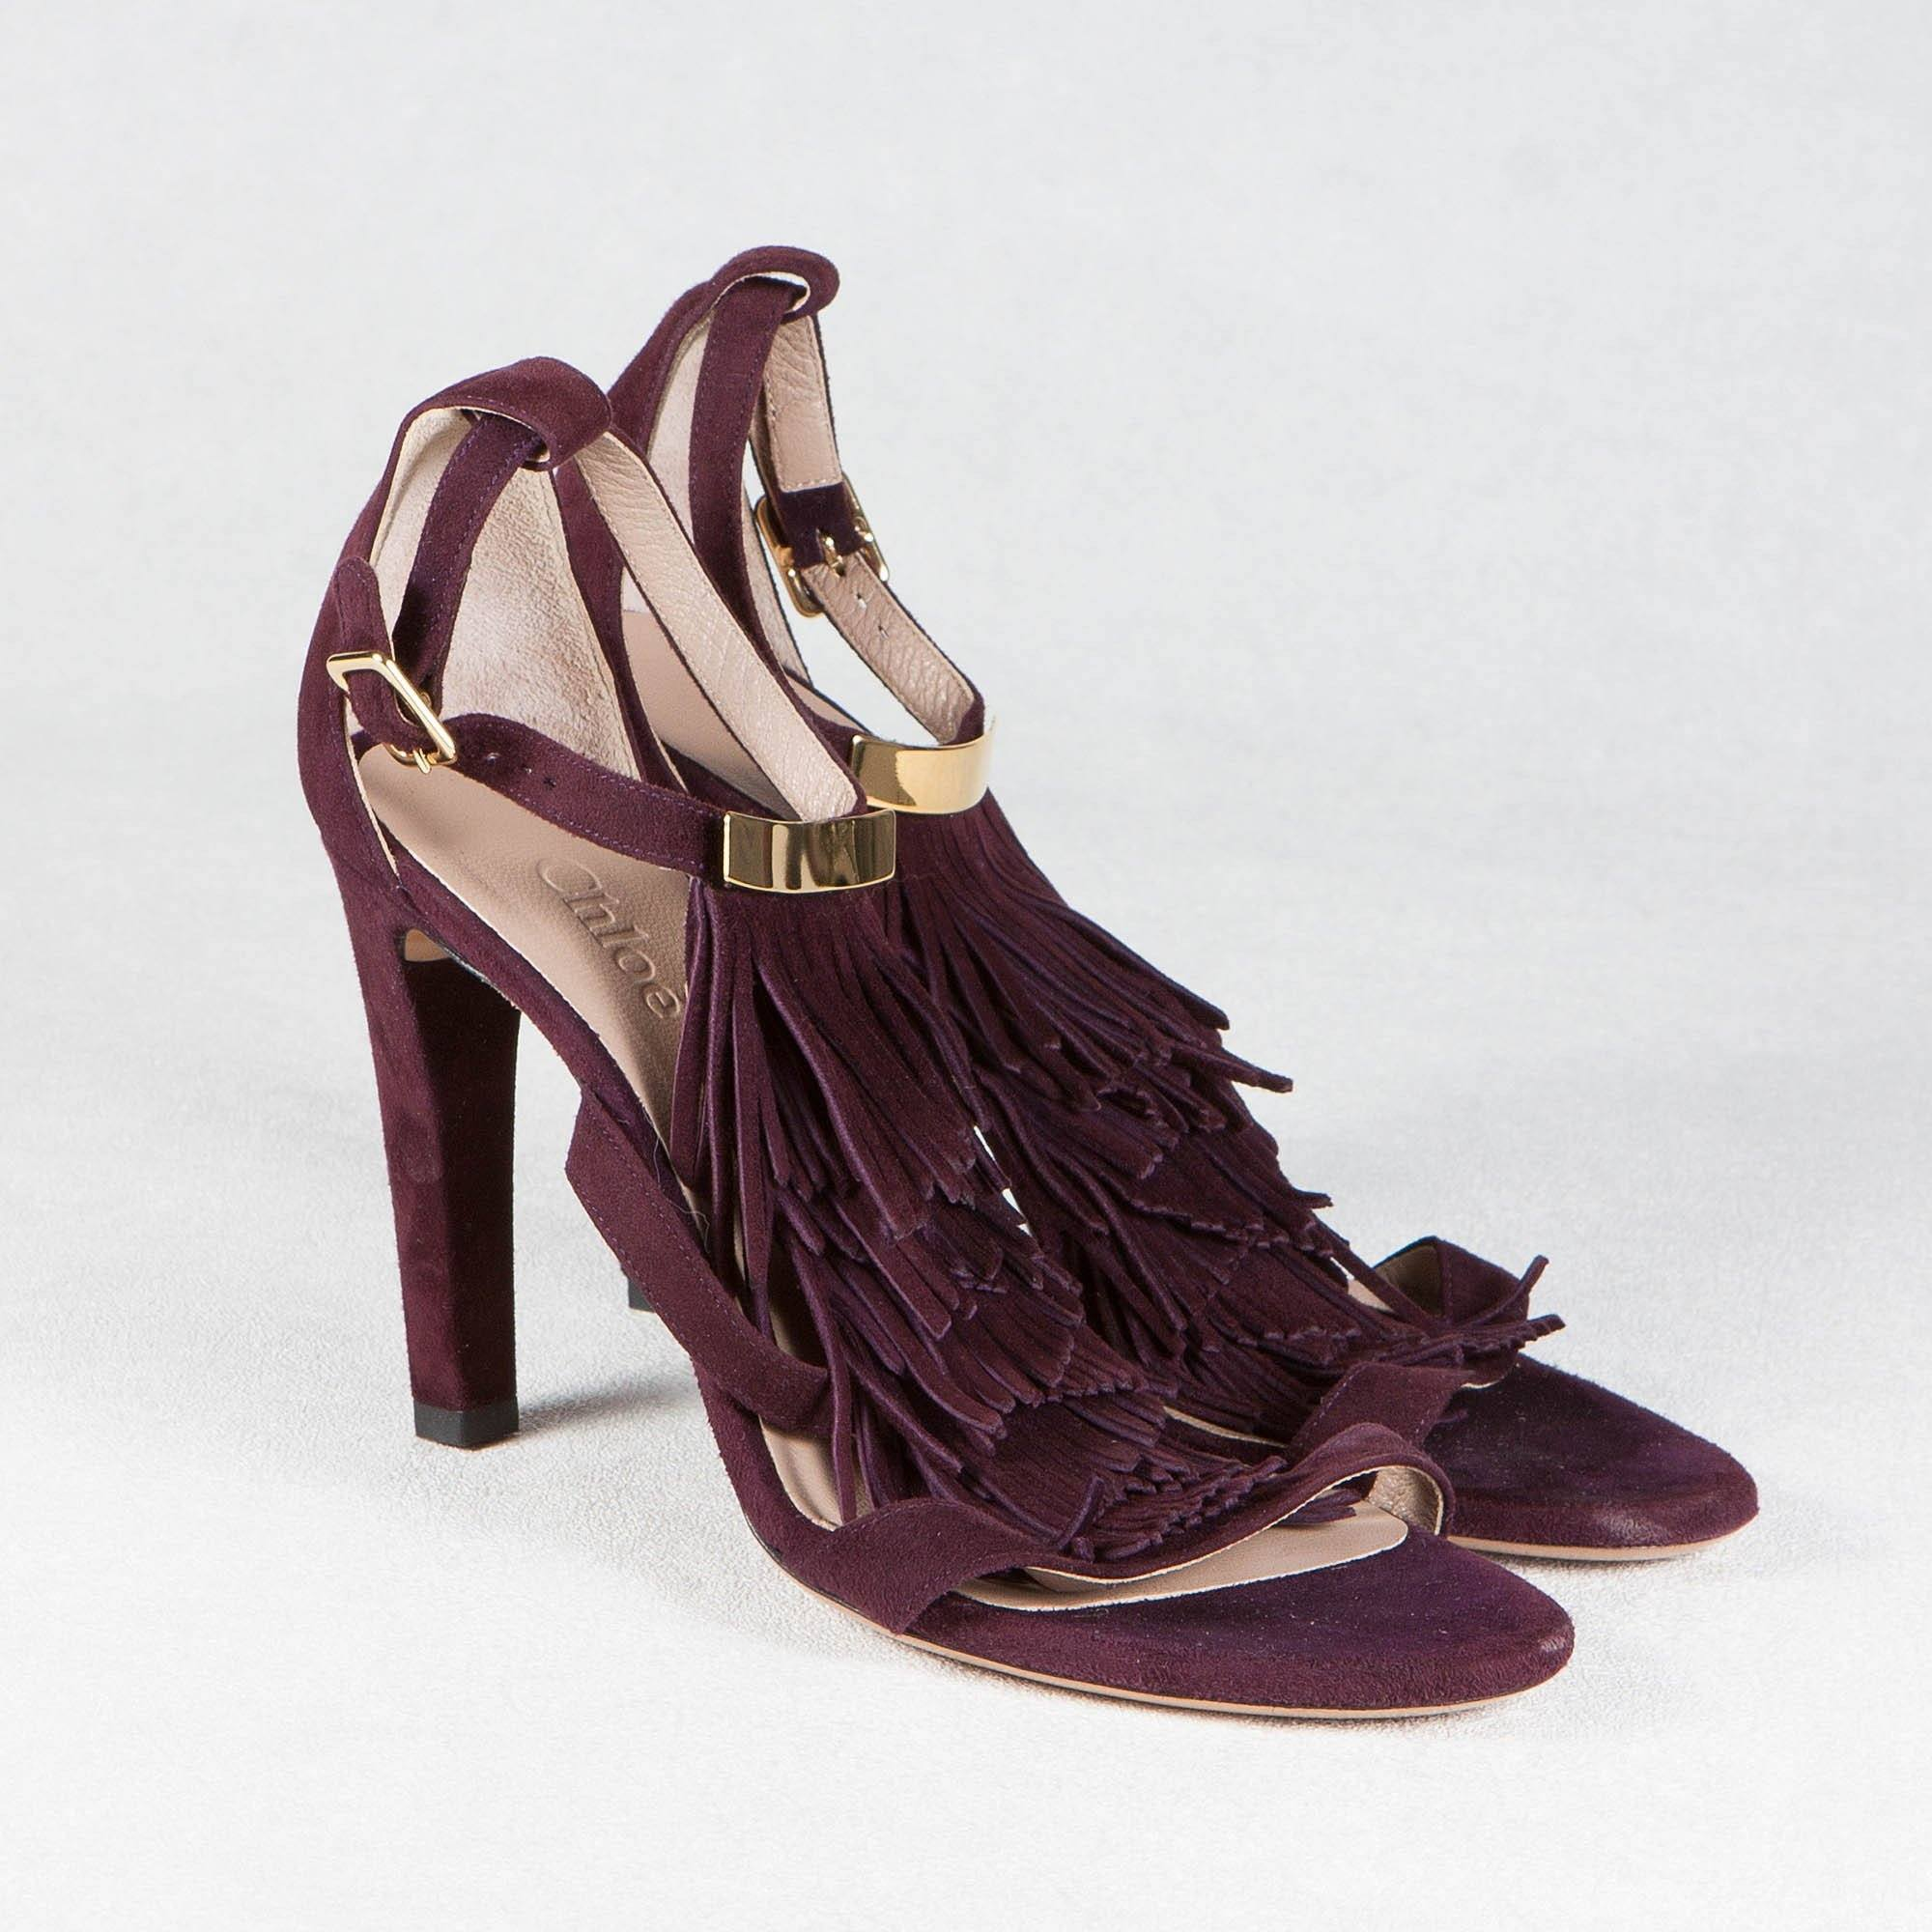 Chloe Purple Suede Fringed Sandals